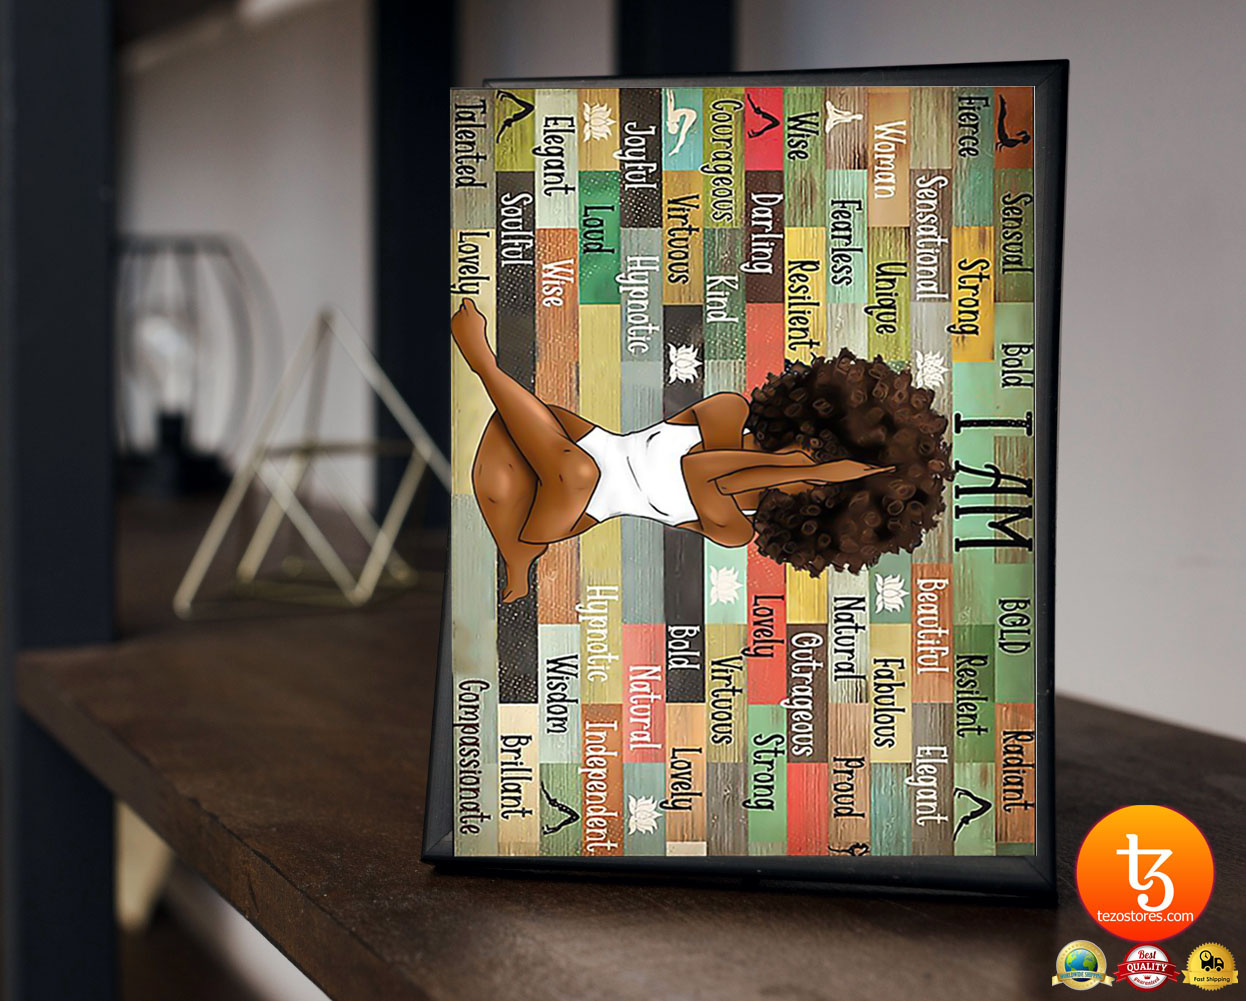 Black girl with yoga I am poster 21